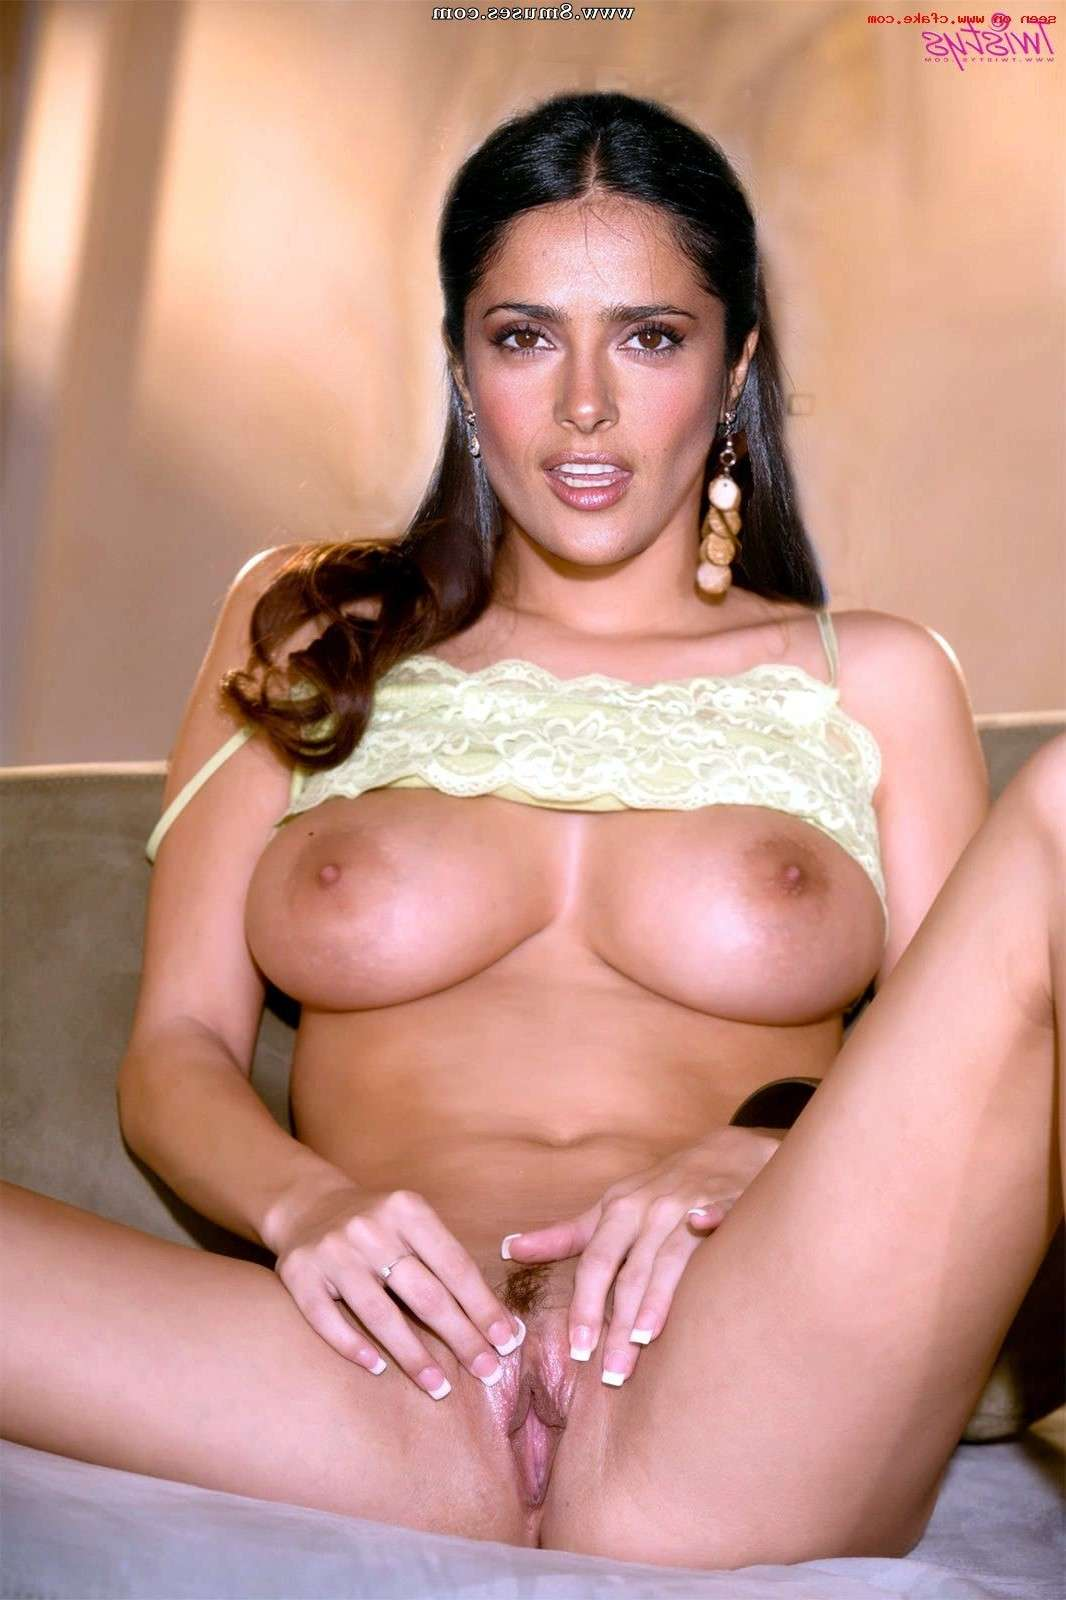 Fake-Celebrities-Sex-Pictures/Salma-Hayek Salma_Hayek__8muses_-_Sex_and_Porn_Comics_98.jpg